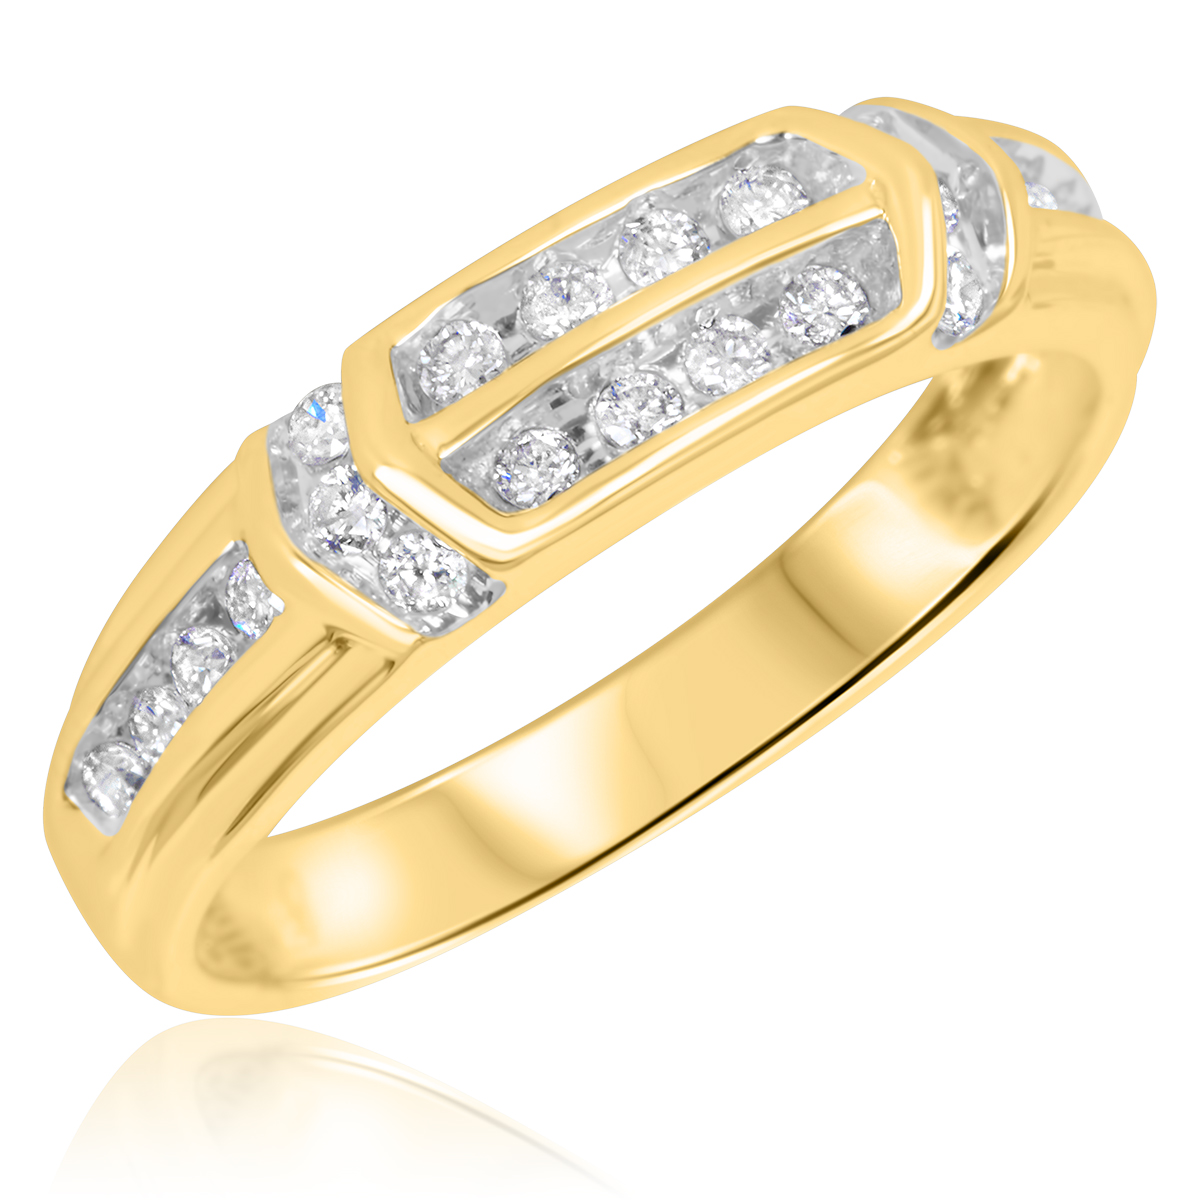 1/4 CT. T.W. Diamond Ladies' Wedding Ring 14K Yellow Gold